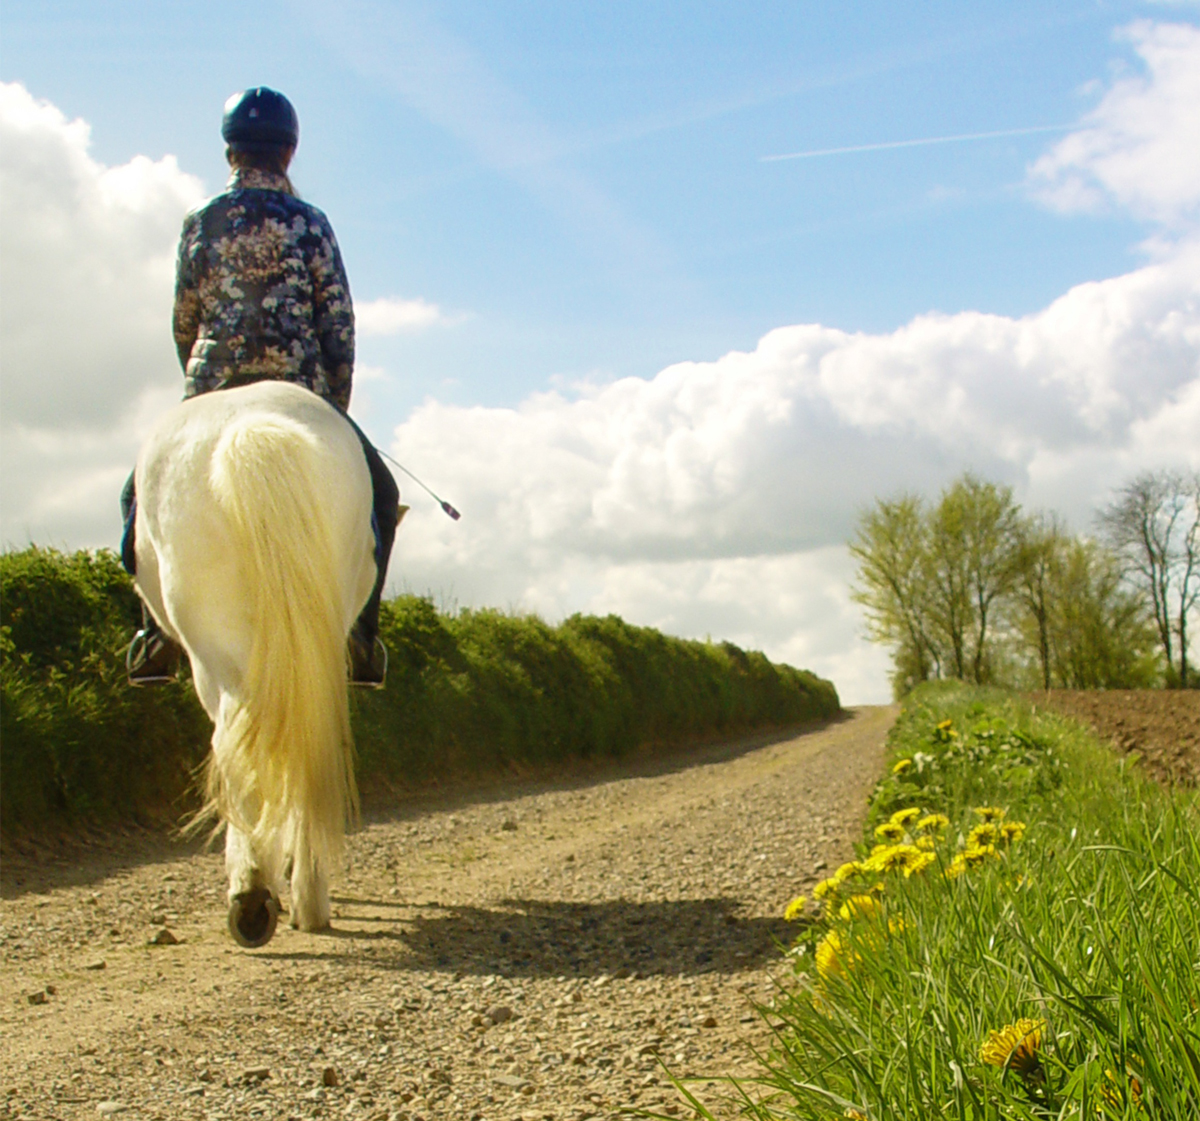 A horse and rider on a country road on a sunny day